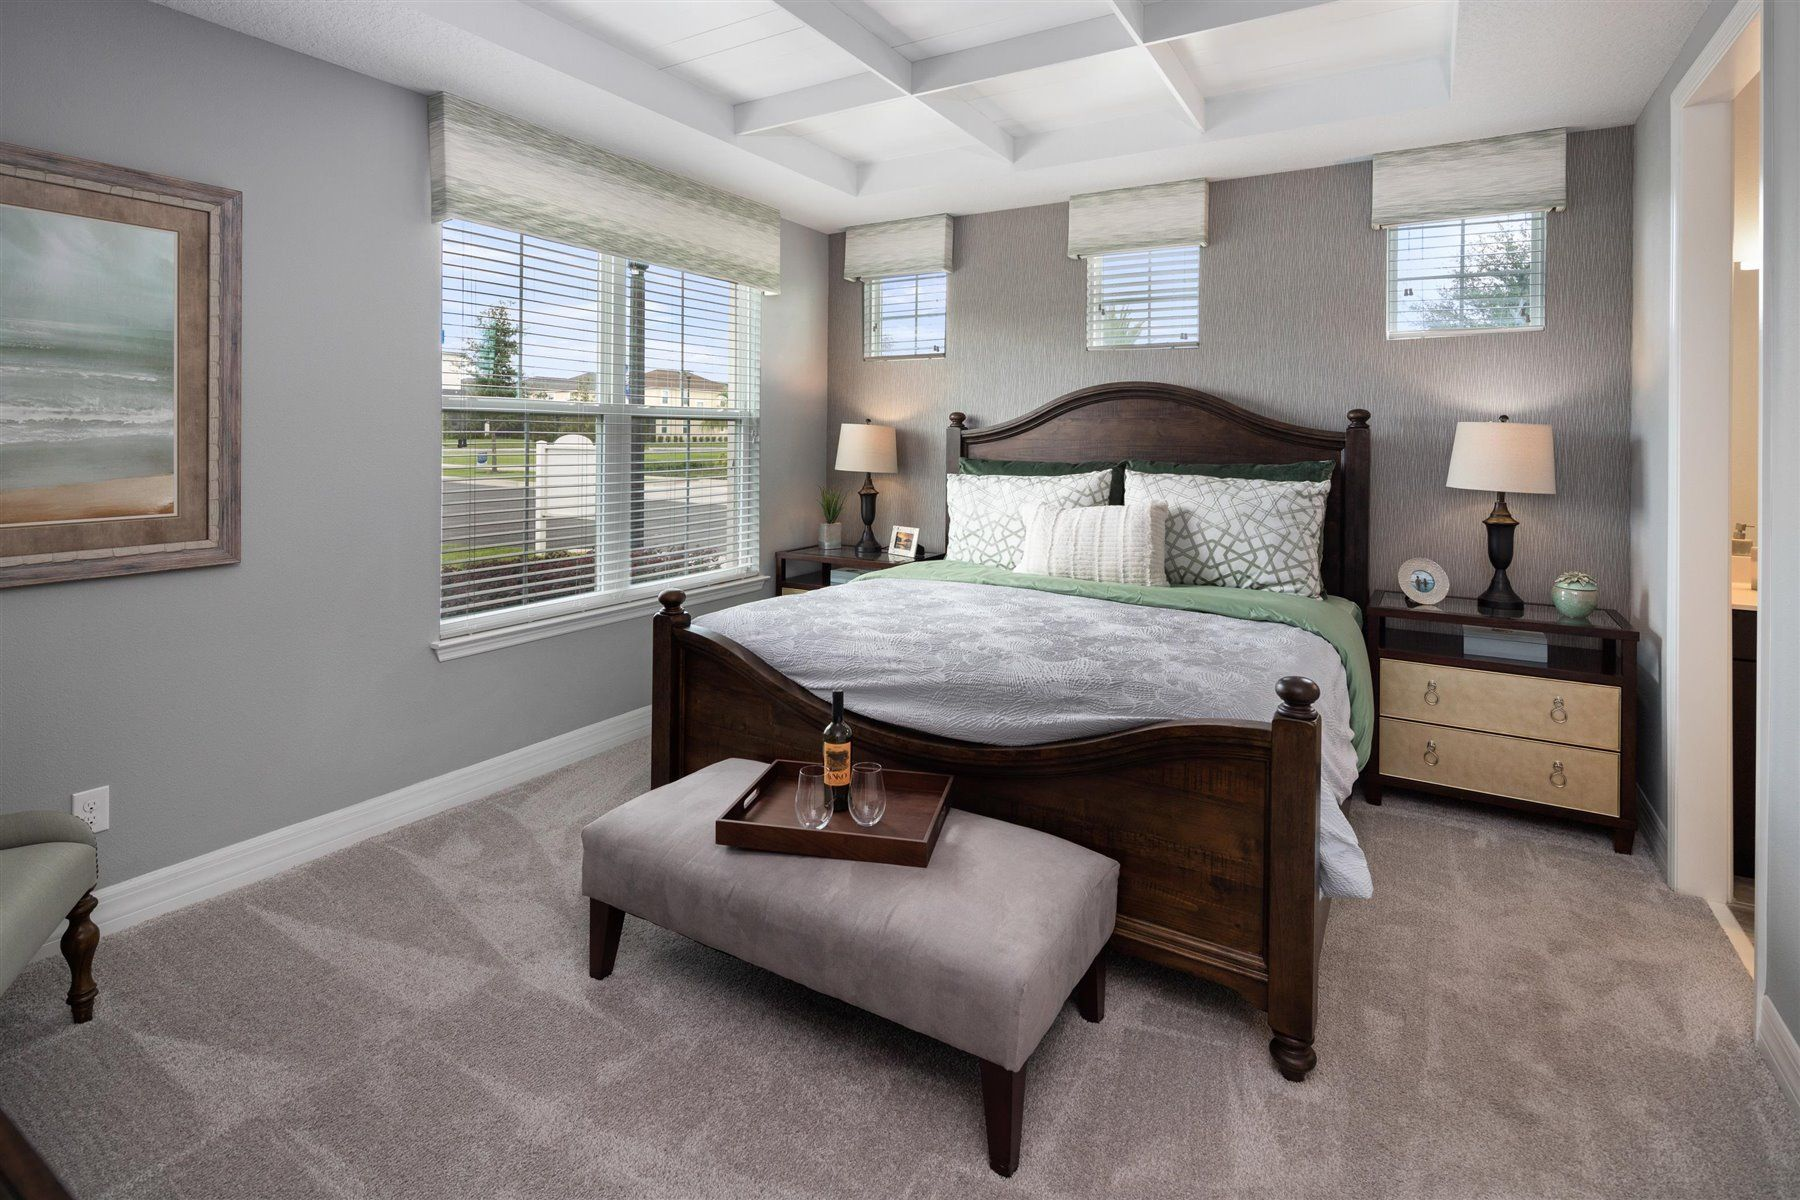 Bedroom featured in the Del Ray By Mattamy Homes in Orlando, FL